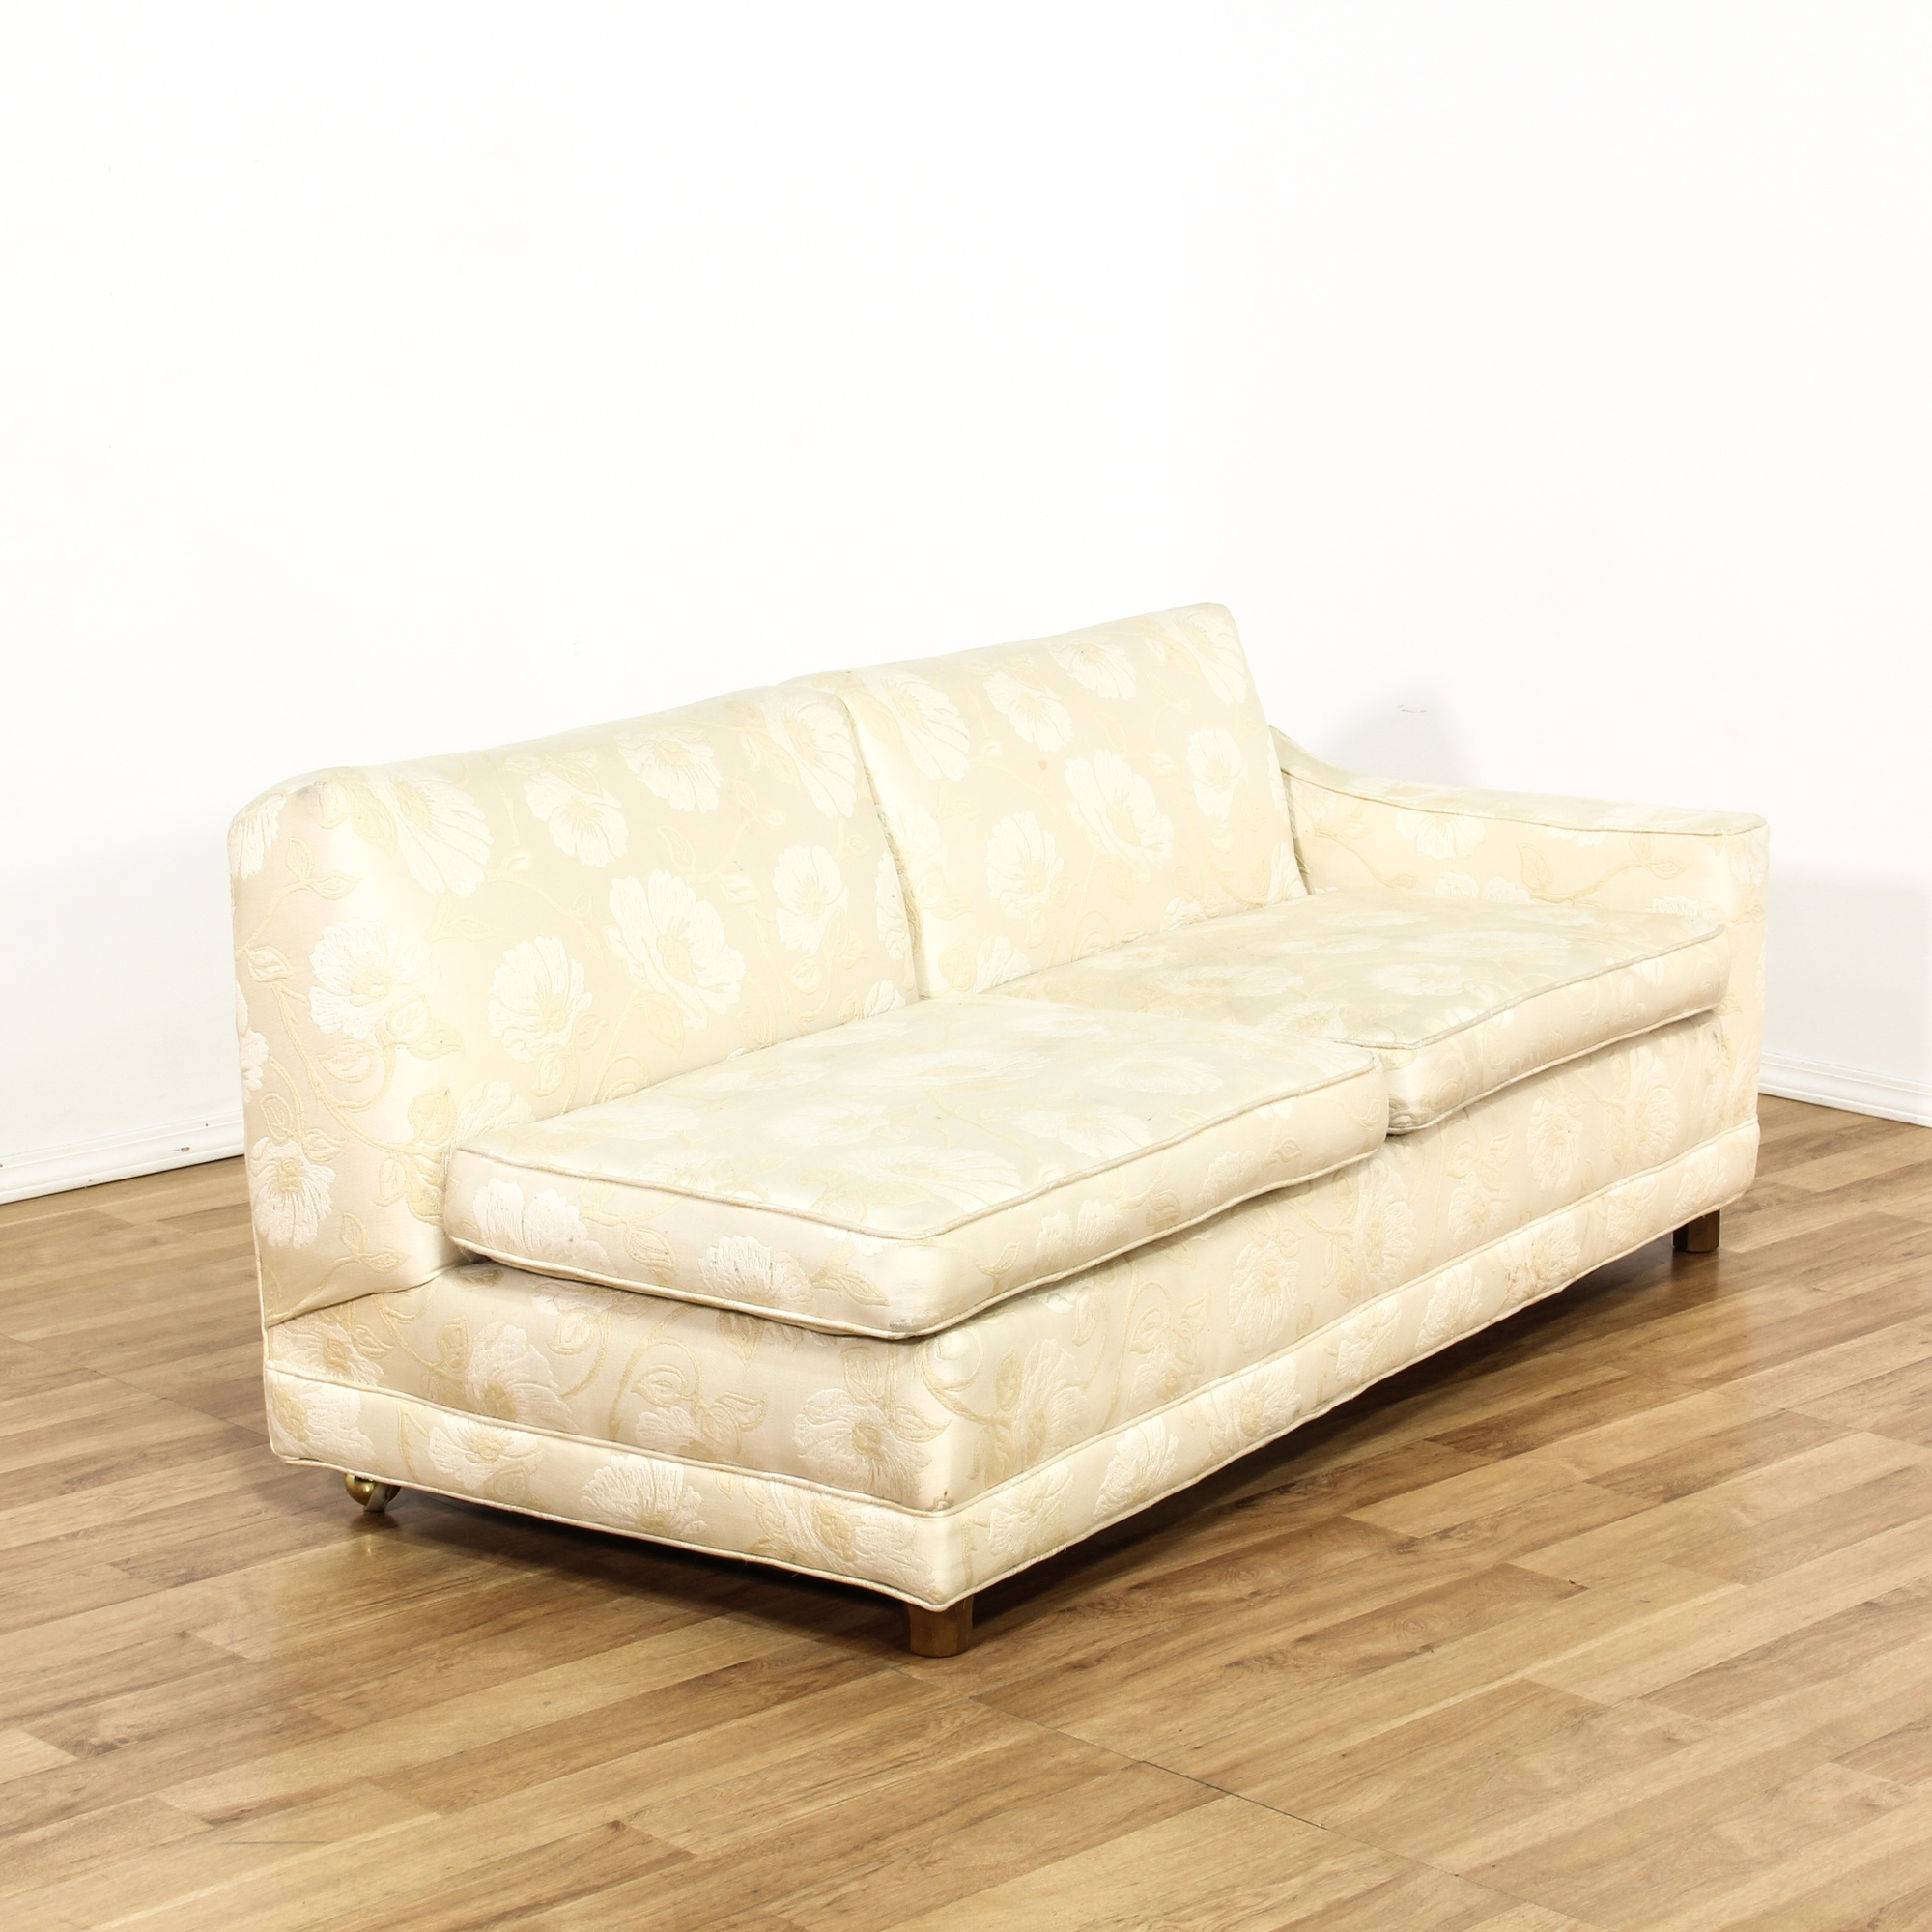 Cream Floral Curved 2 Piece Sectional Sofa Loveseat